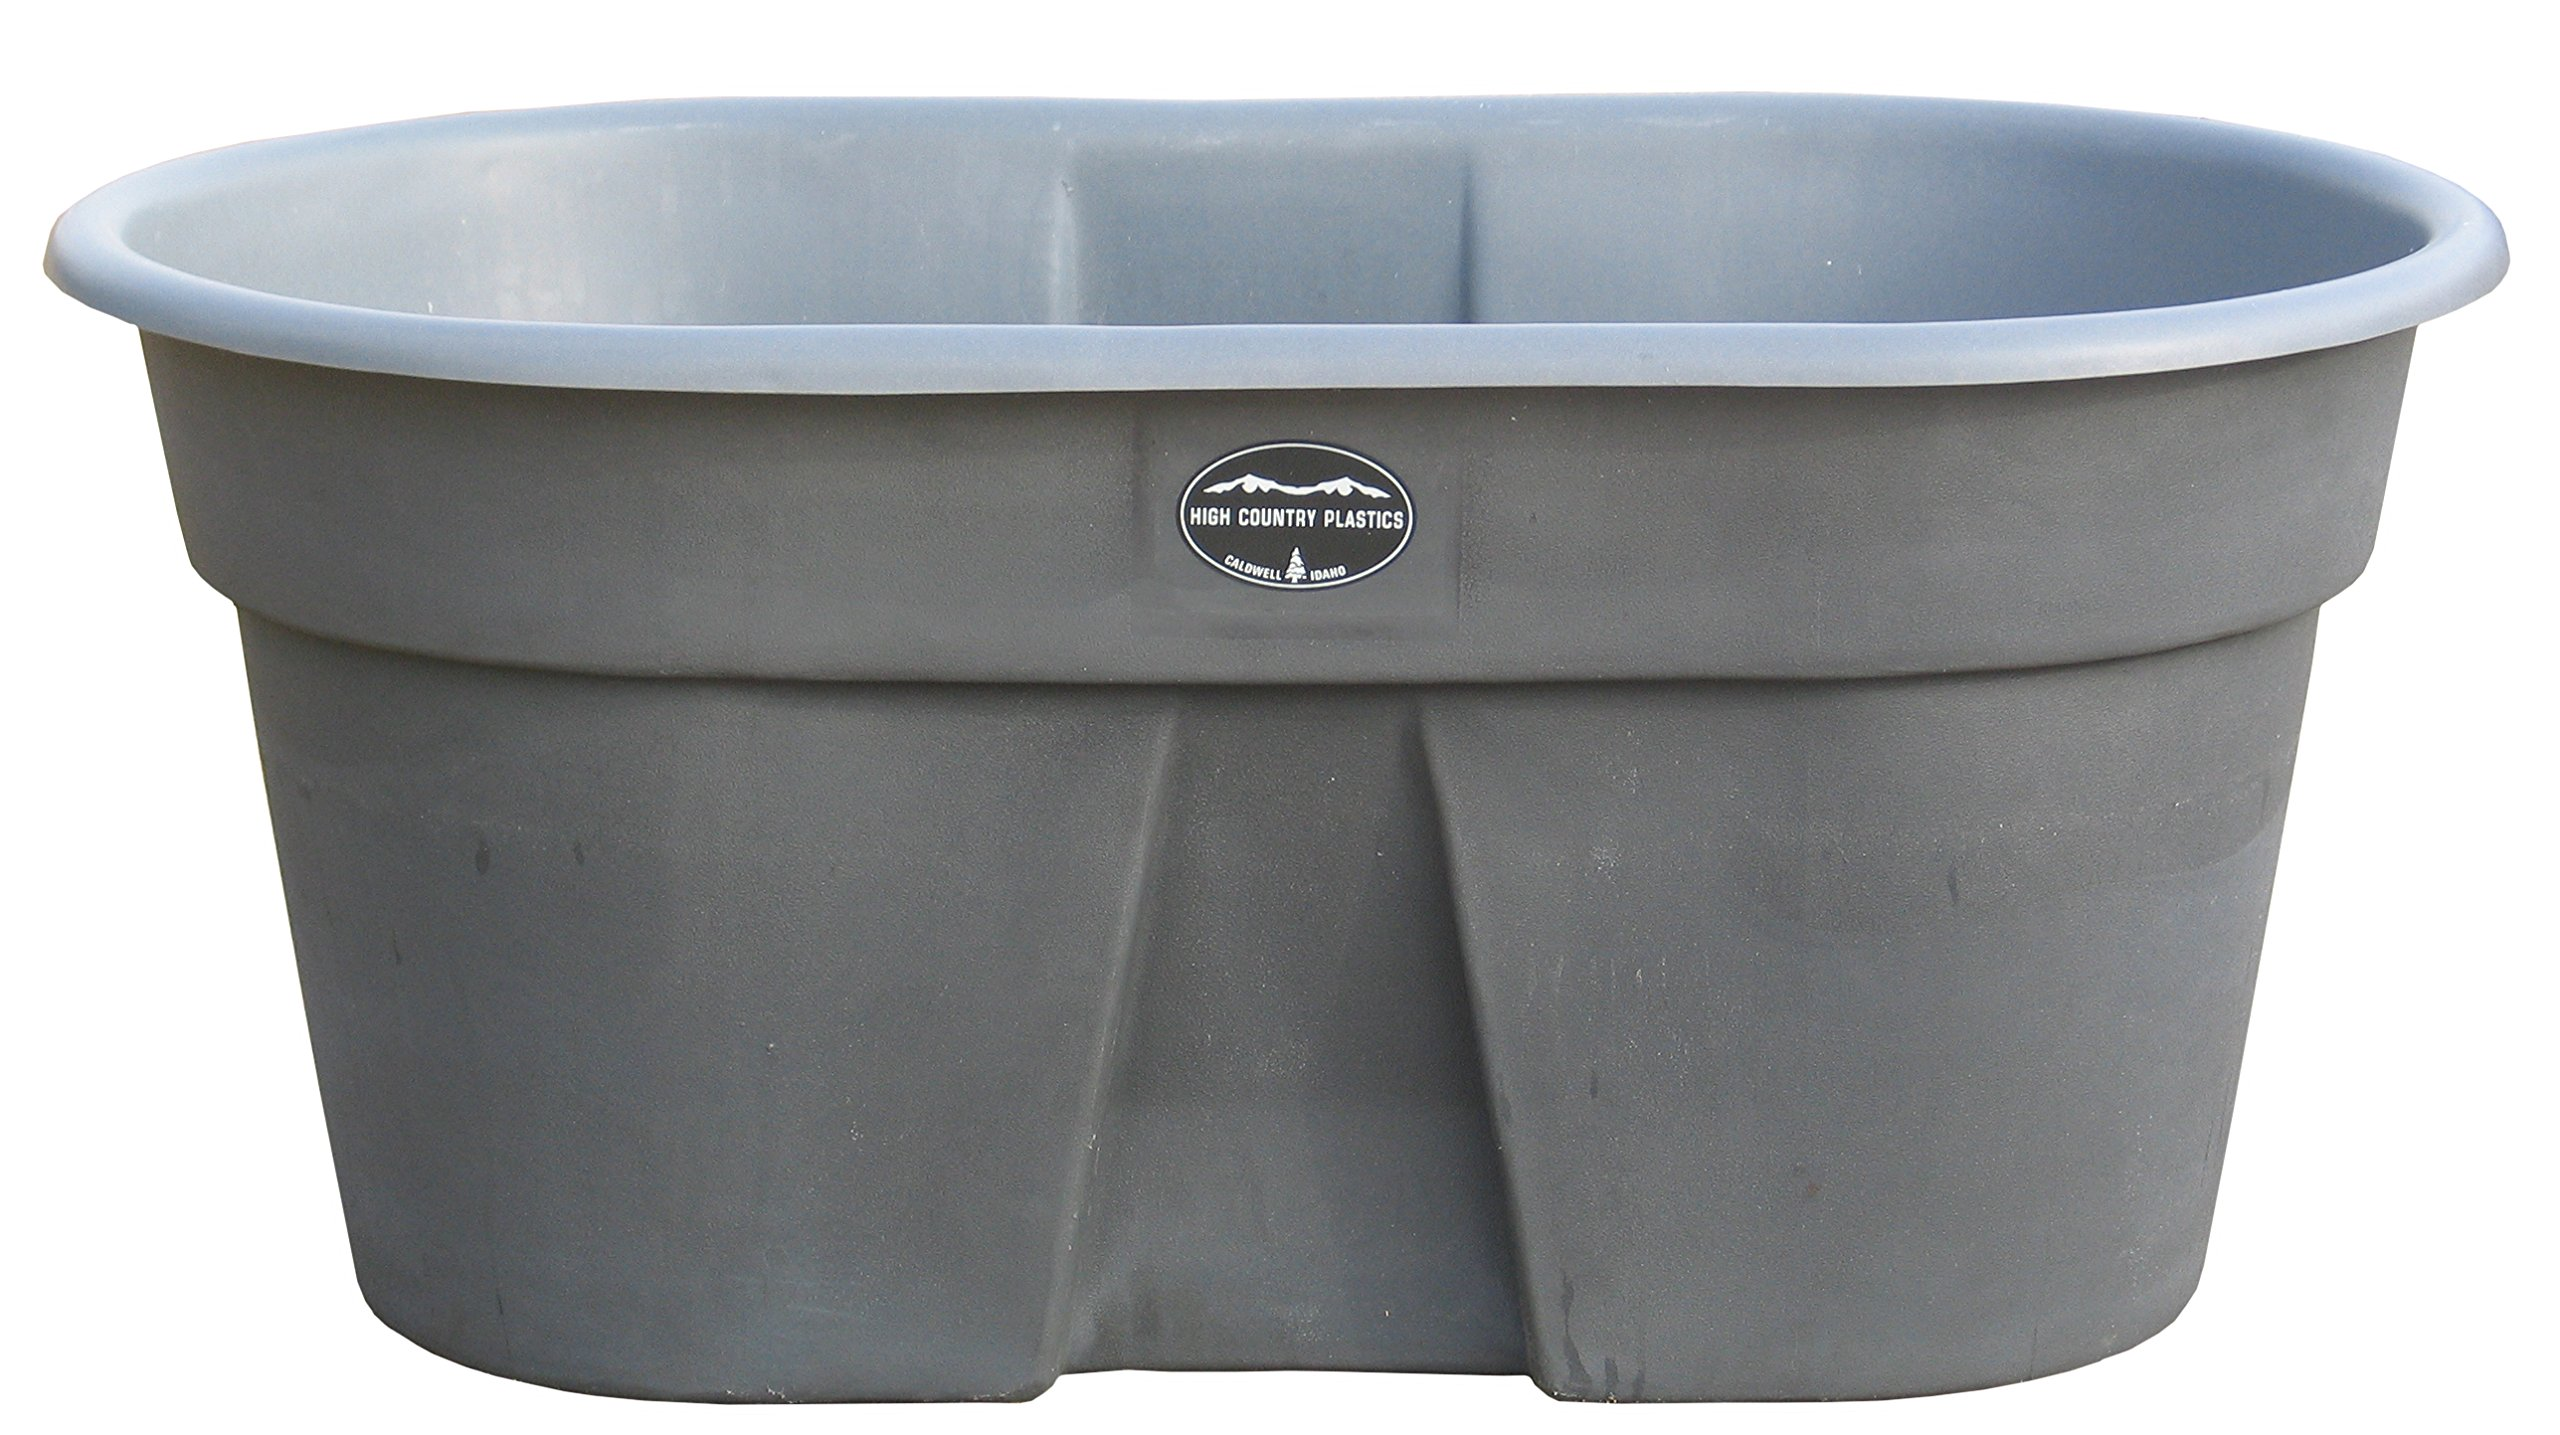 High Country Plastics W-100AG 100 Gallon Water Tank, Ash Gray by High Country Plastics